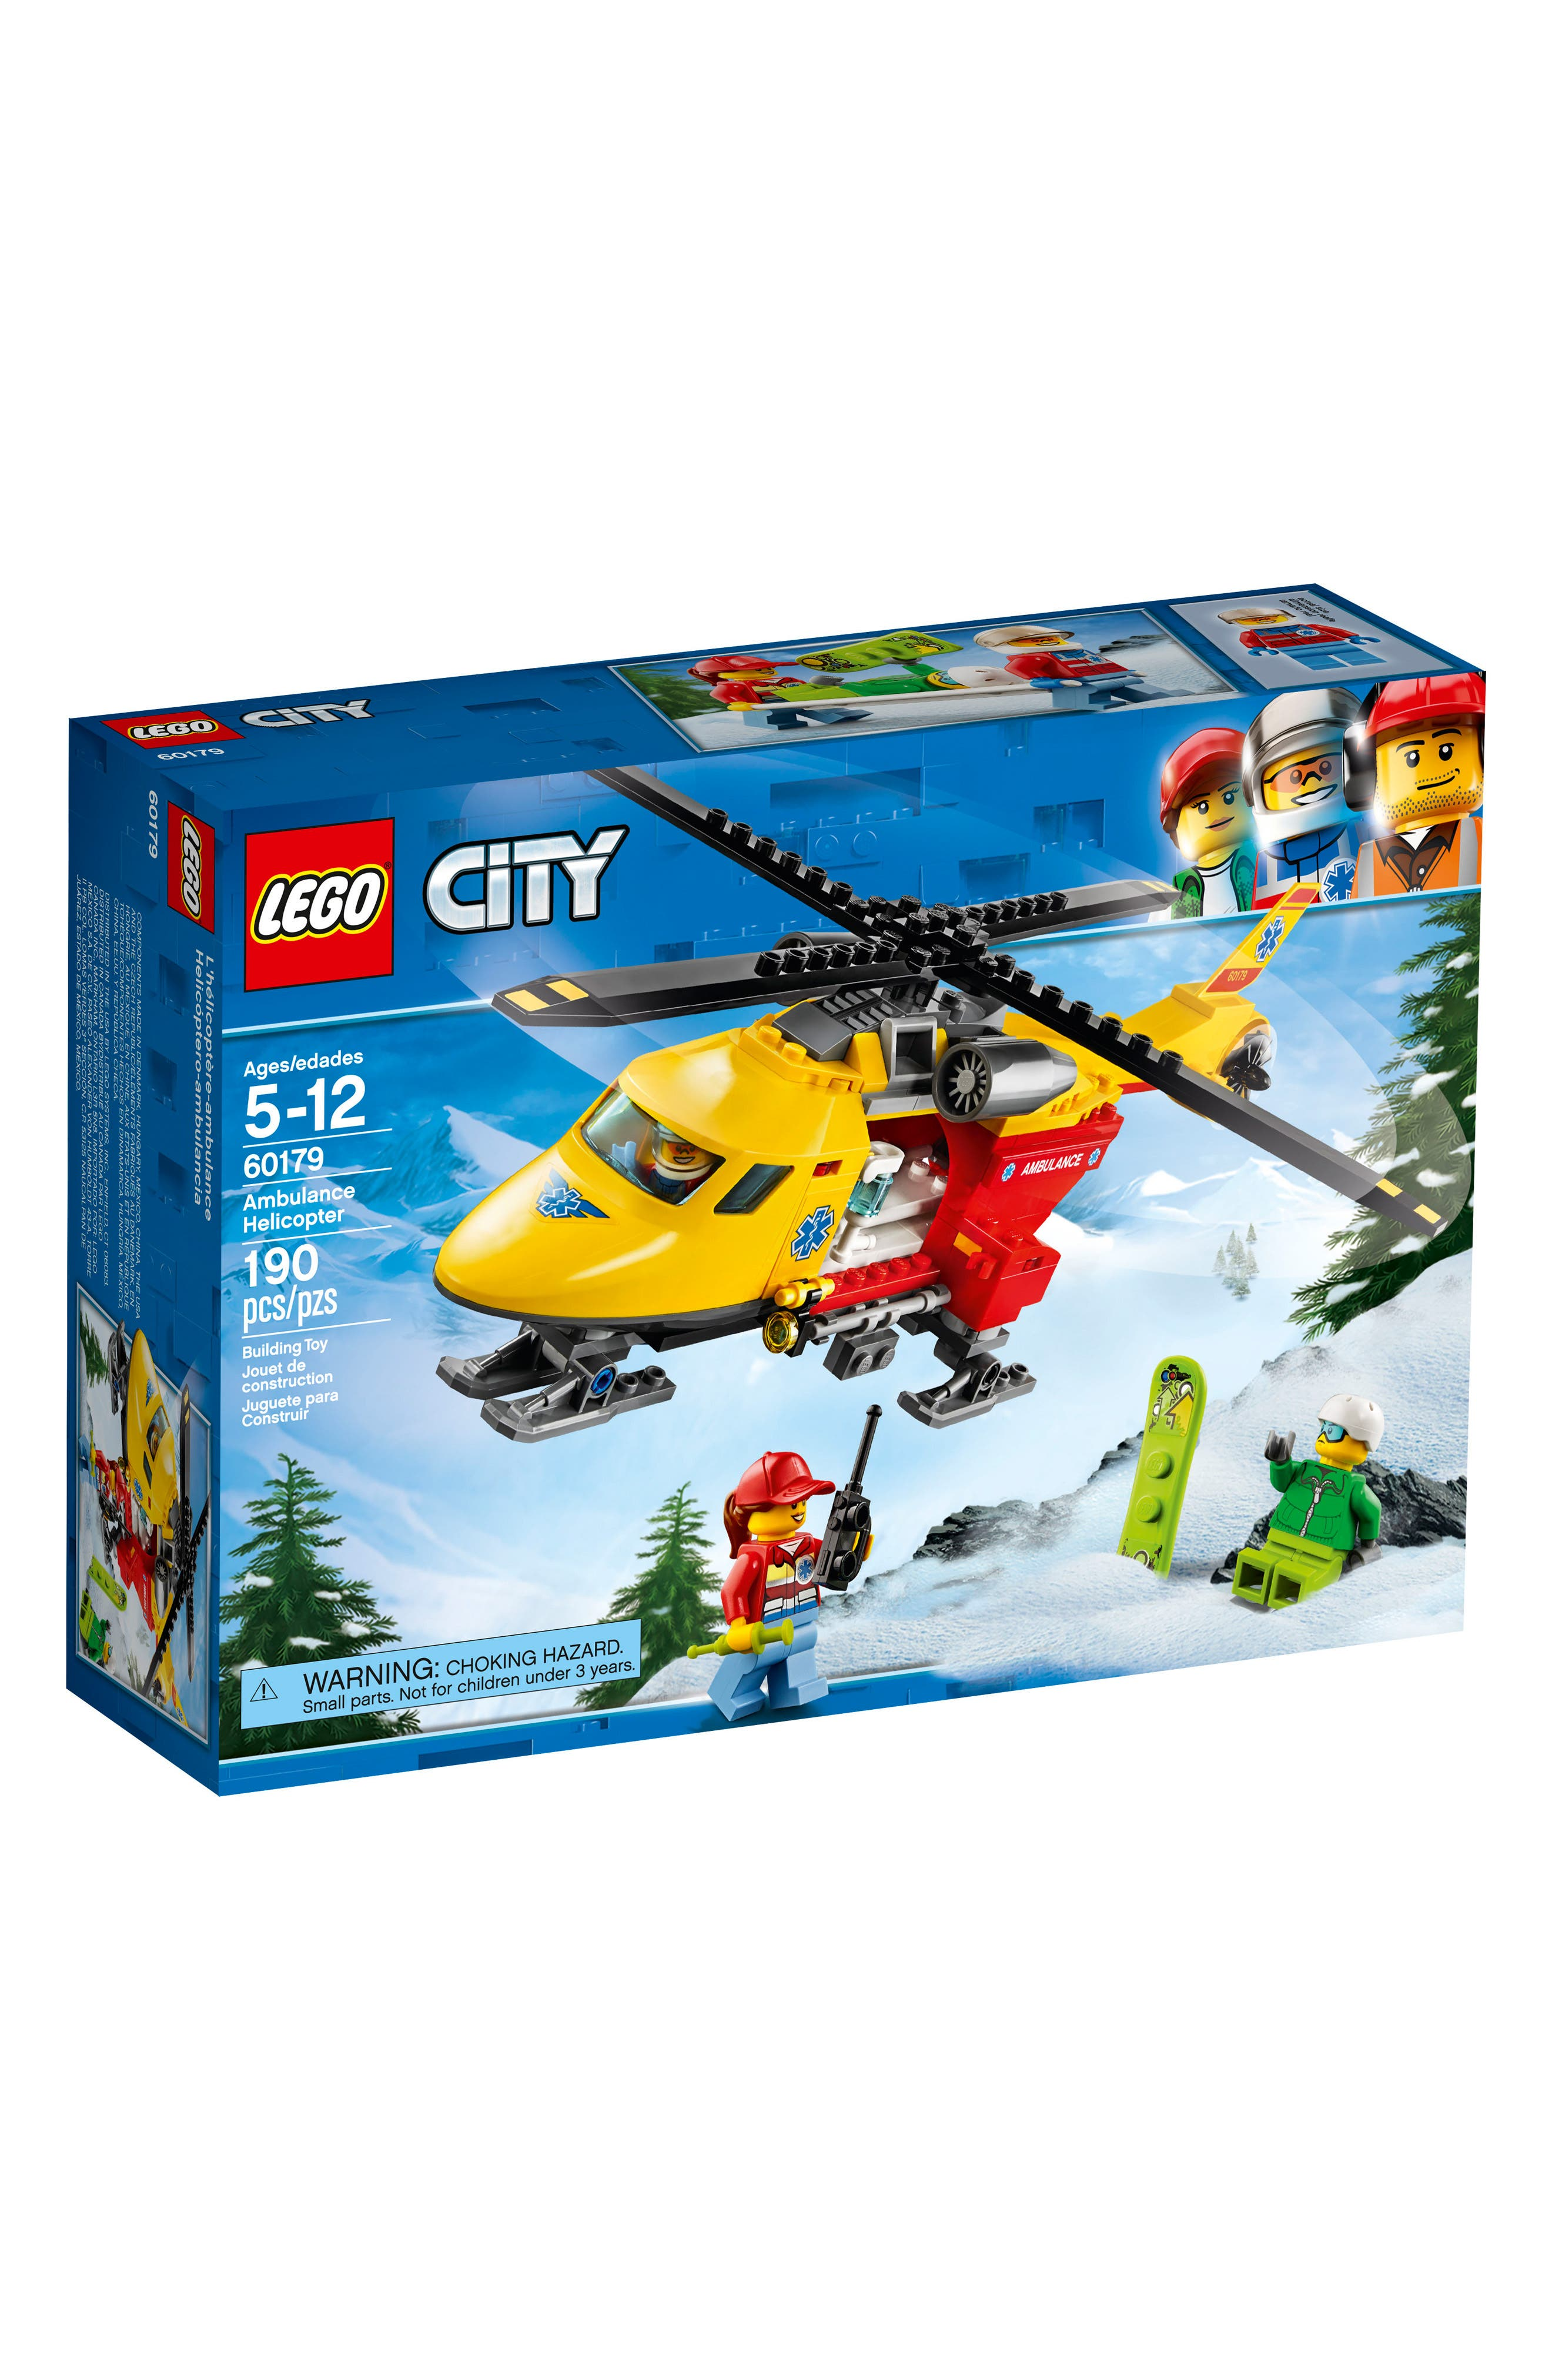 LEGO<sup>™</sup> City Ambulance Helicopter - 60179,                         Main,                         color, Multi